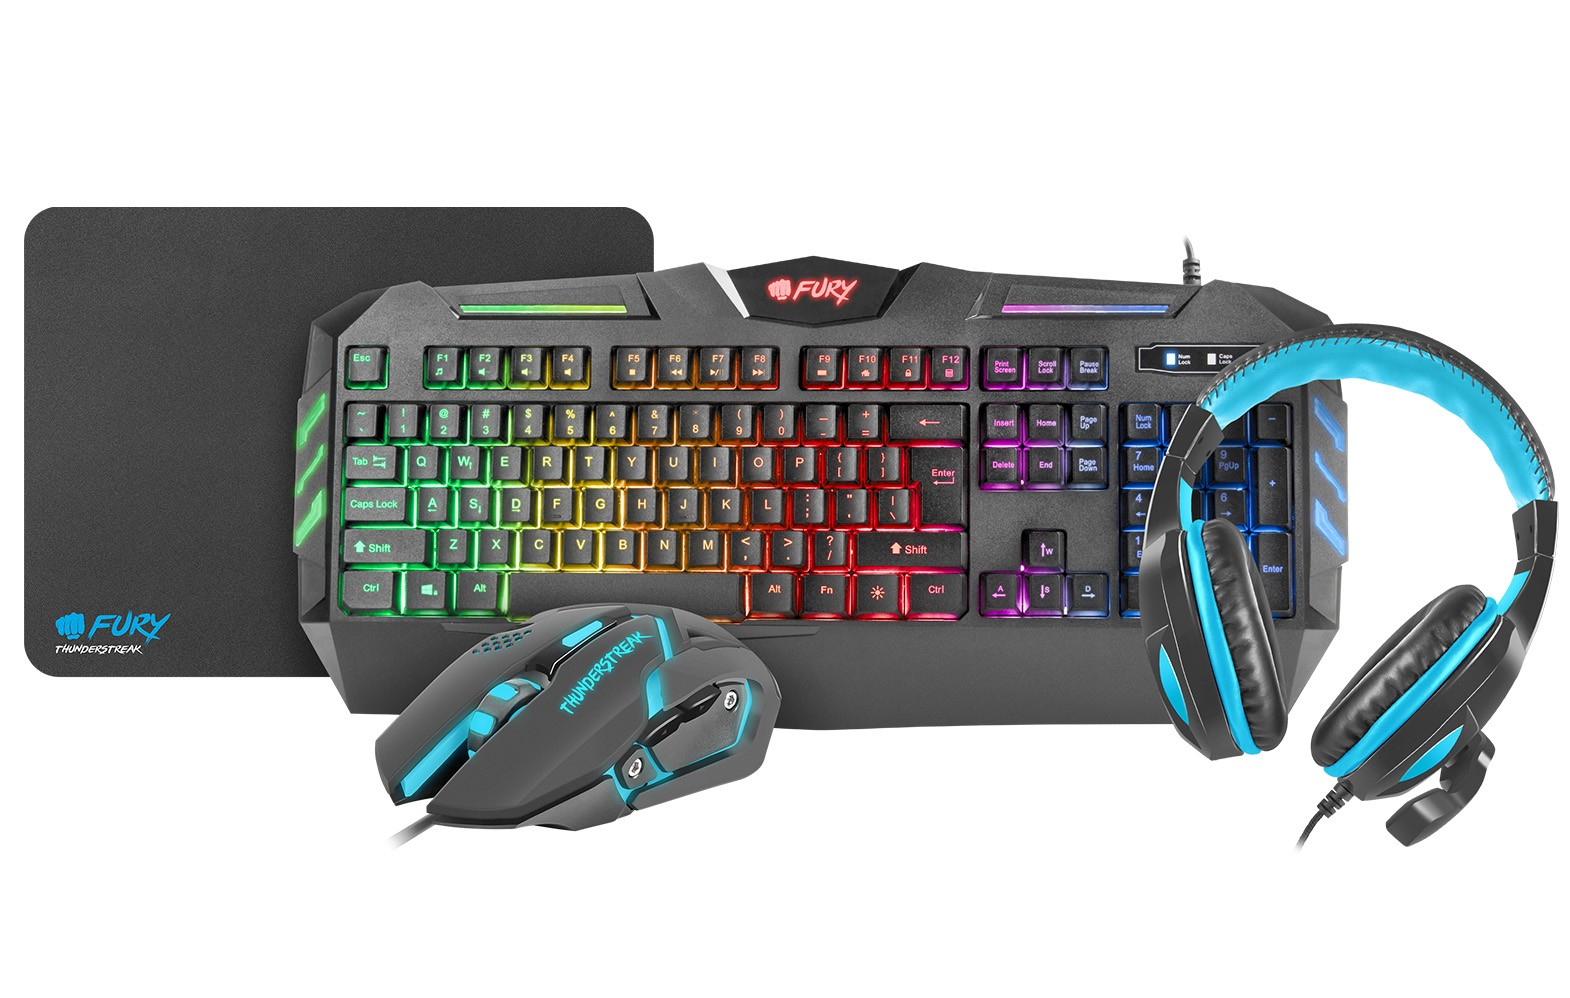 FURY THUNDERSTREAK KEYBOARD + MOUSE + HEADPHONES + MOUSEPAD GAMING COMBO SET 4 IN 1 (US LAYOUT)